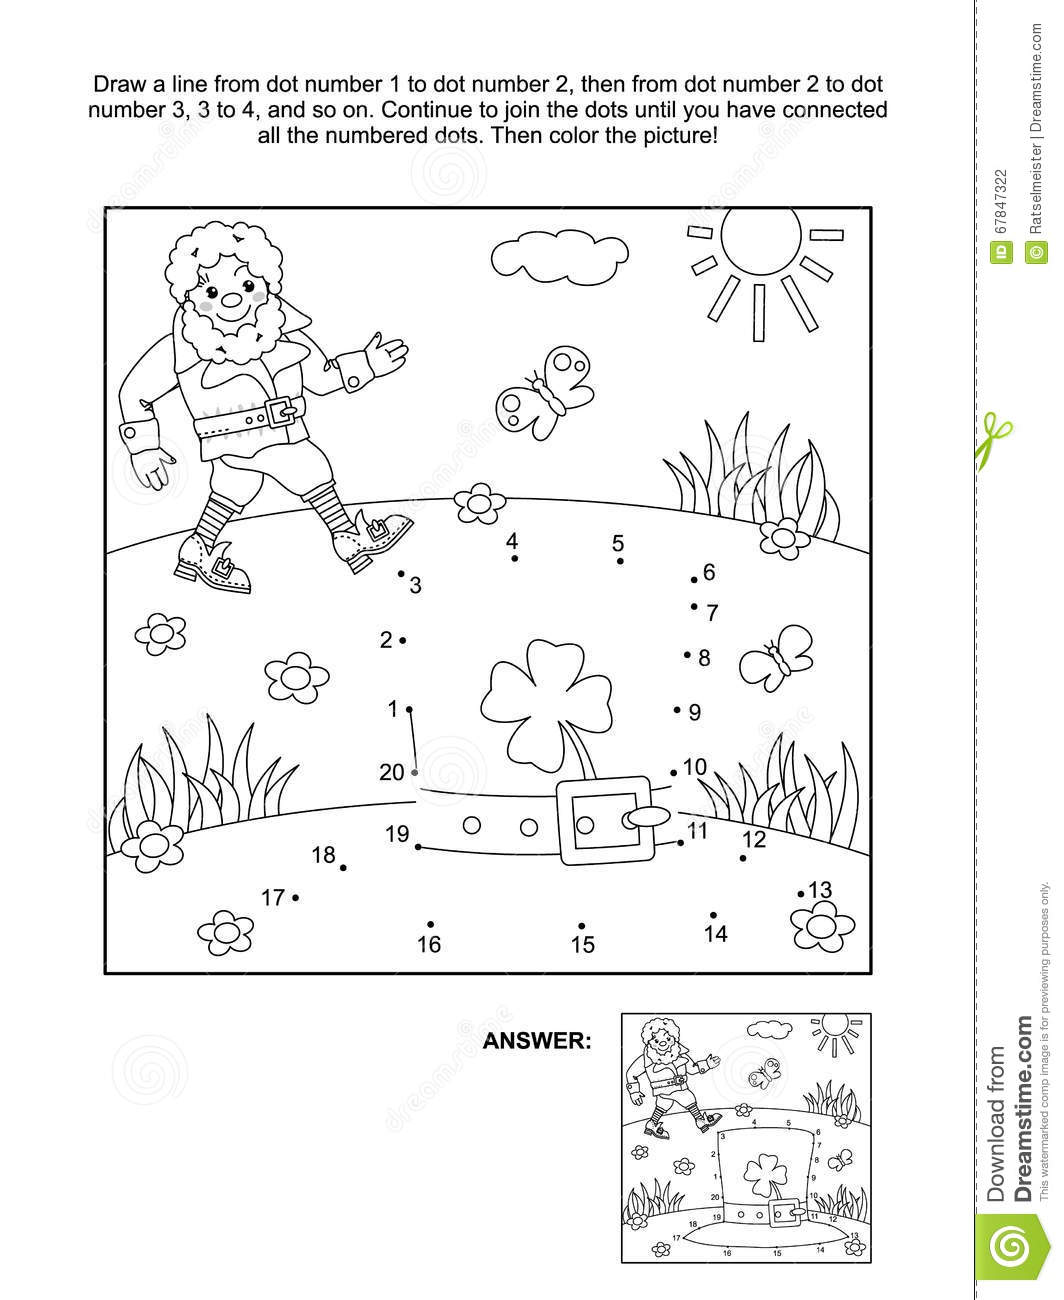 St Patrick S Day Themed Dot To Dot And Coloring Page